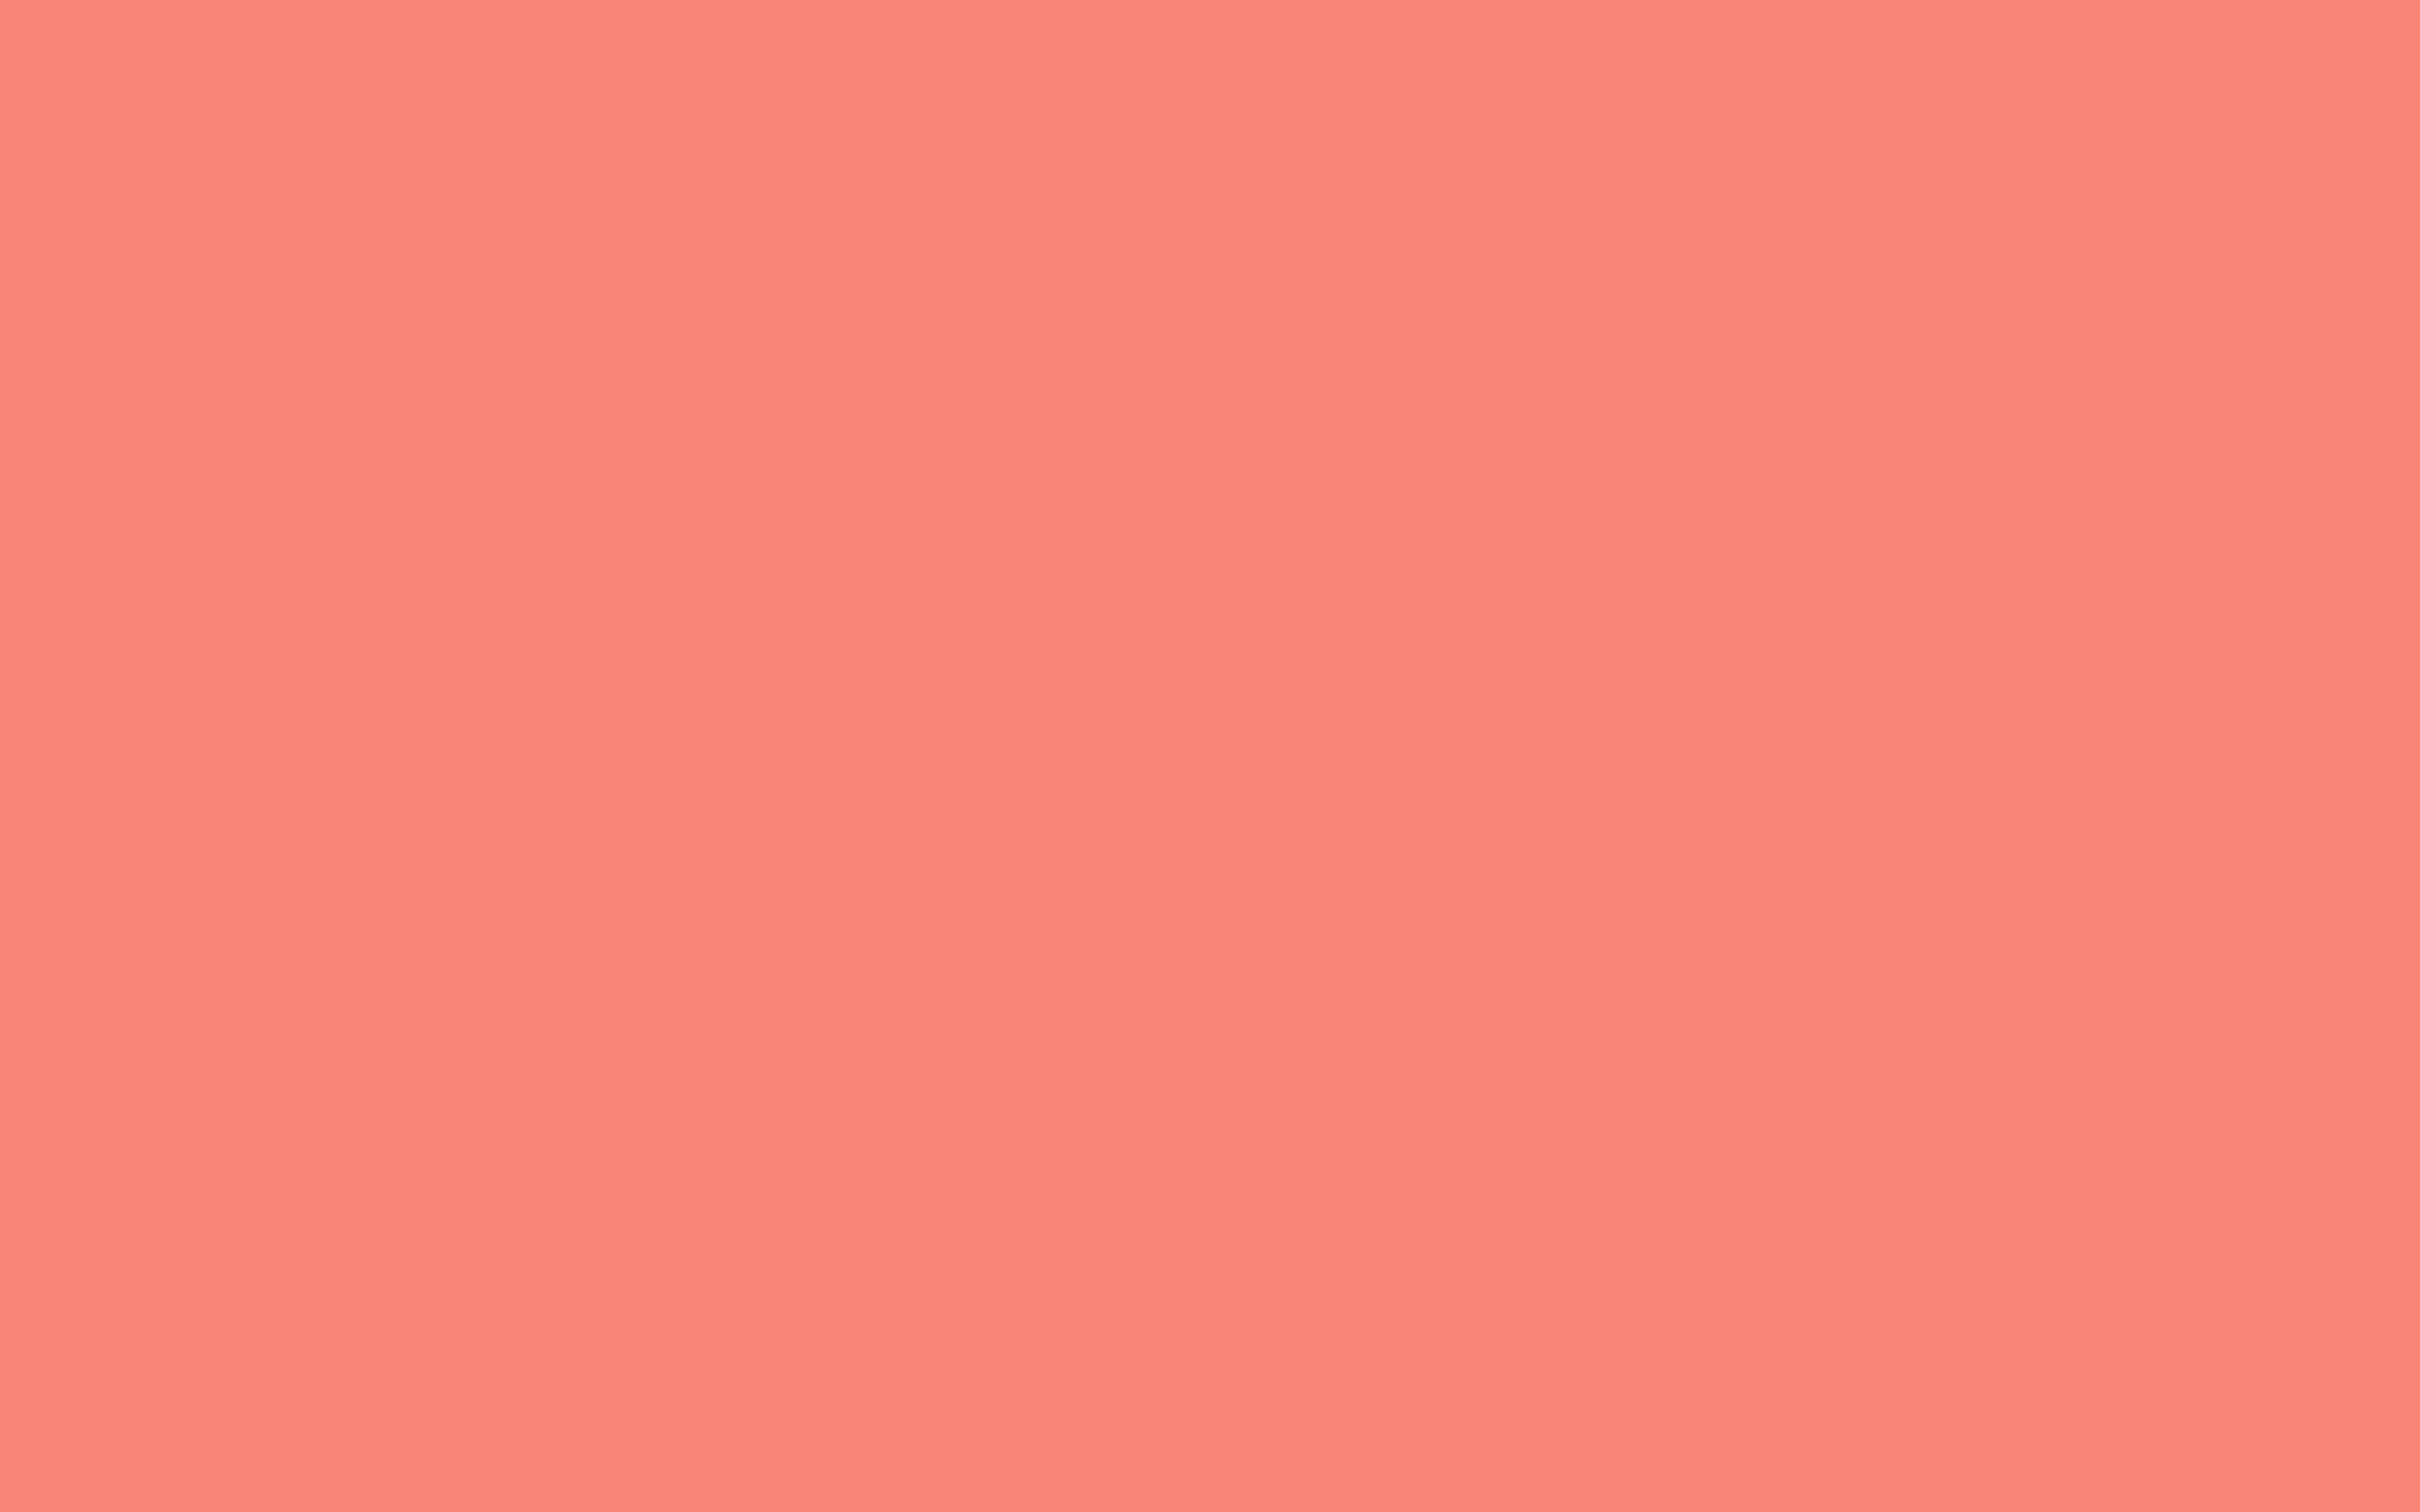 2880x1800 Coral Pink Solid Color Background